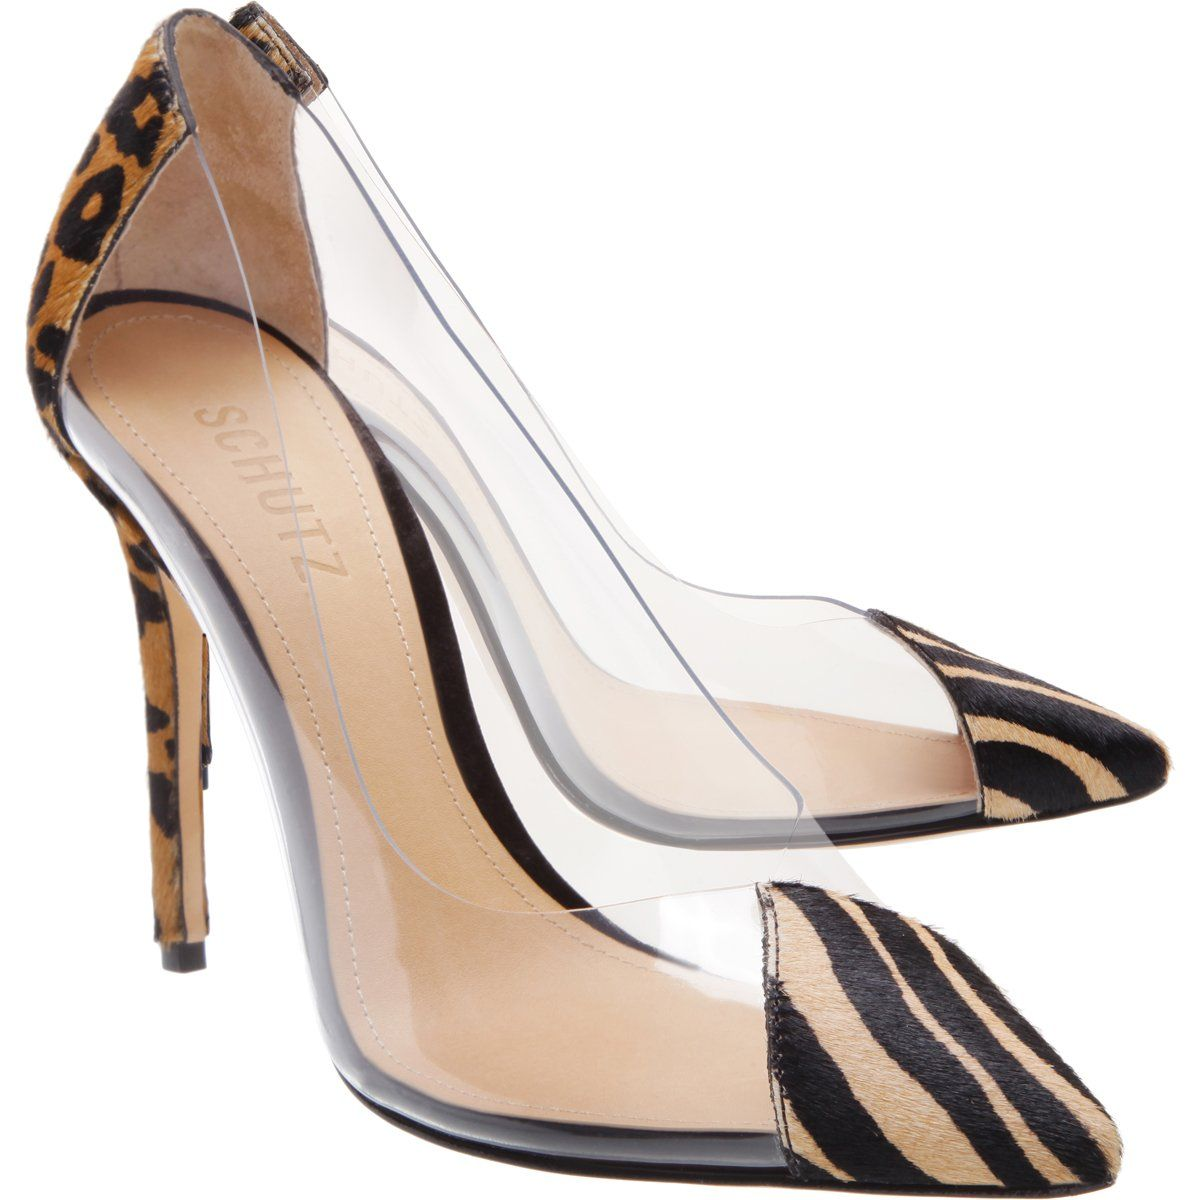 S Cendi 2 High Heel Animal Printed Pump | Schutz Shoes in